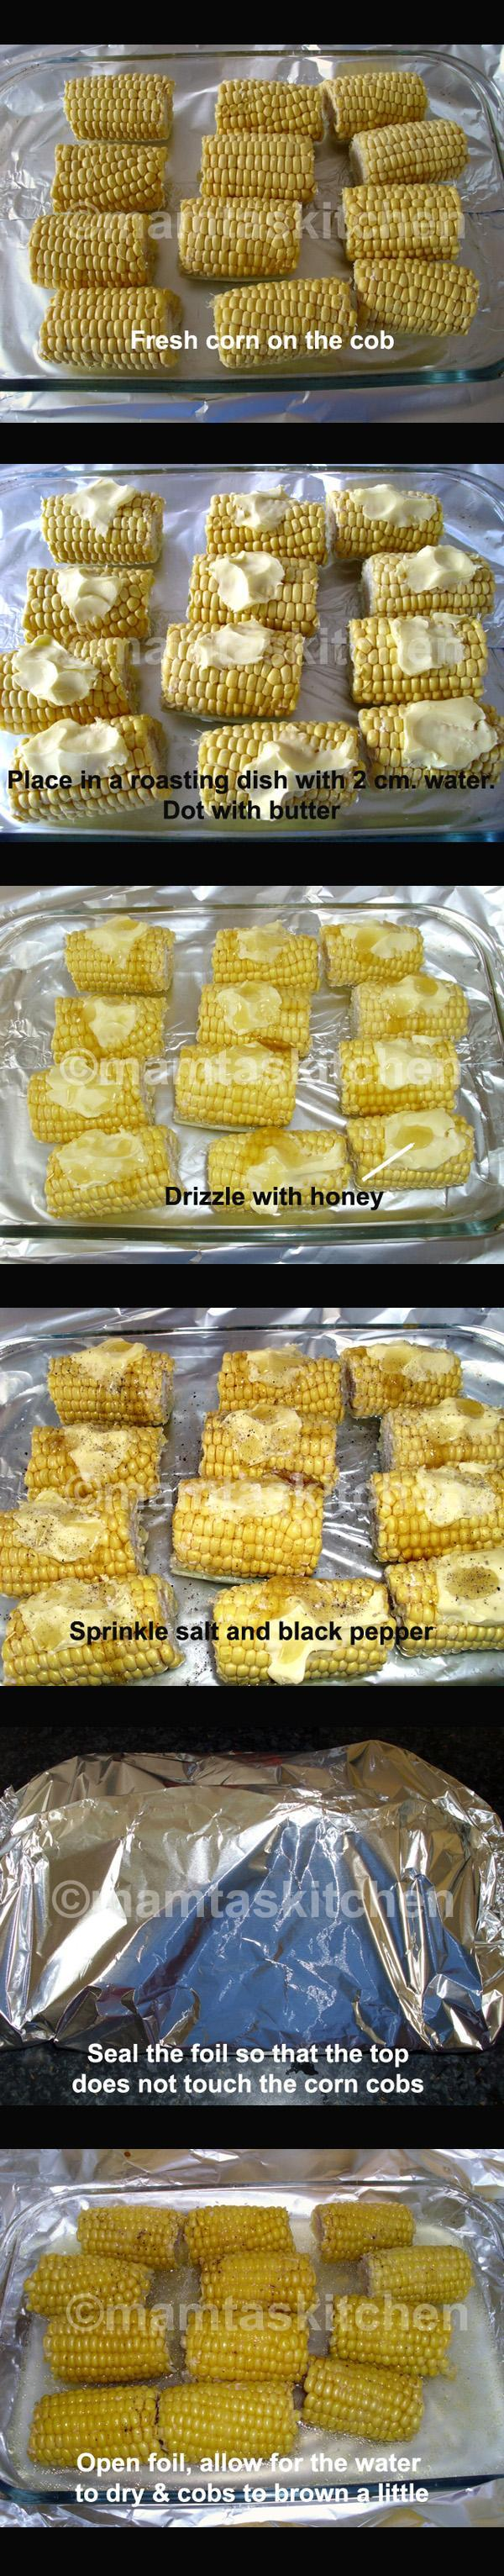 Corn on the Cob 2 - Oven Cooked